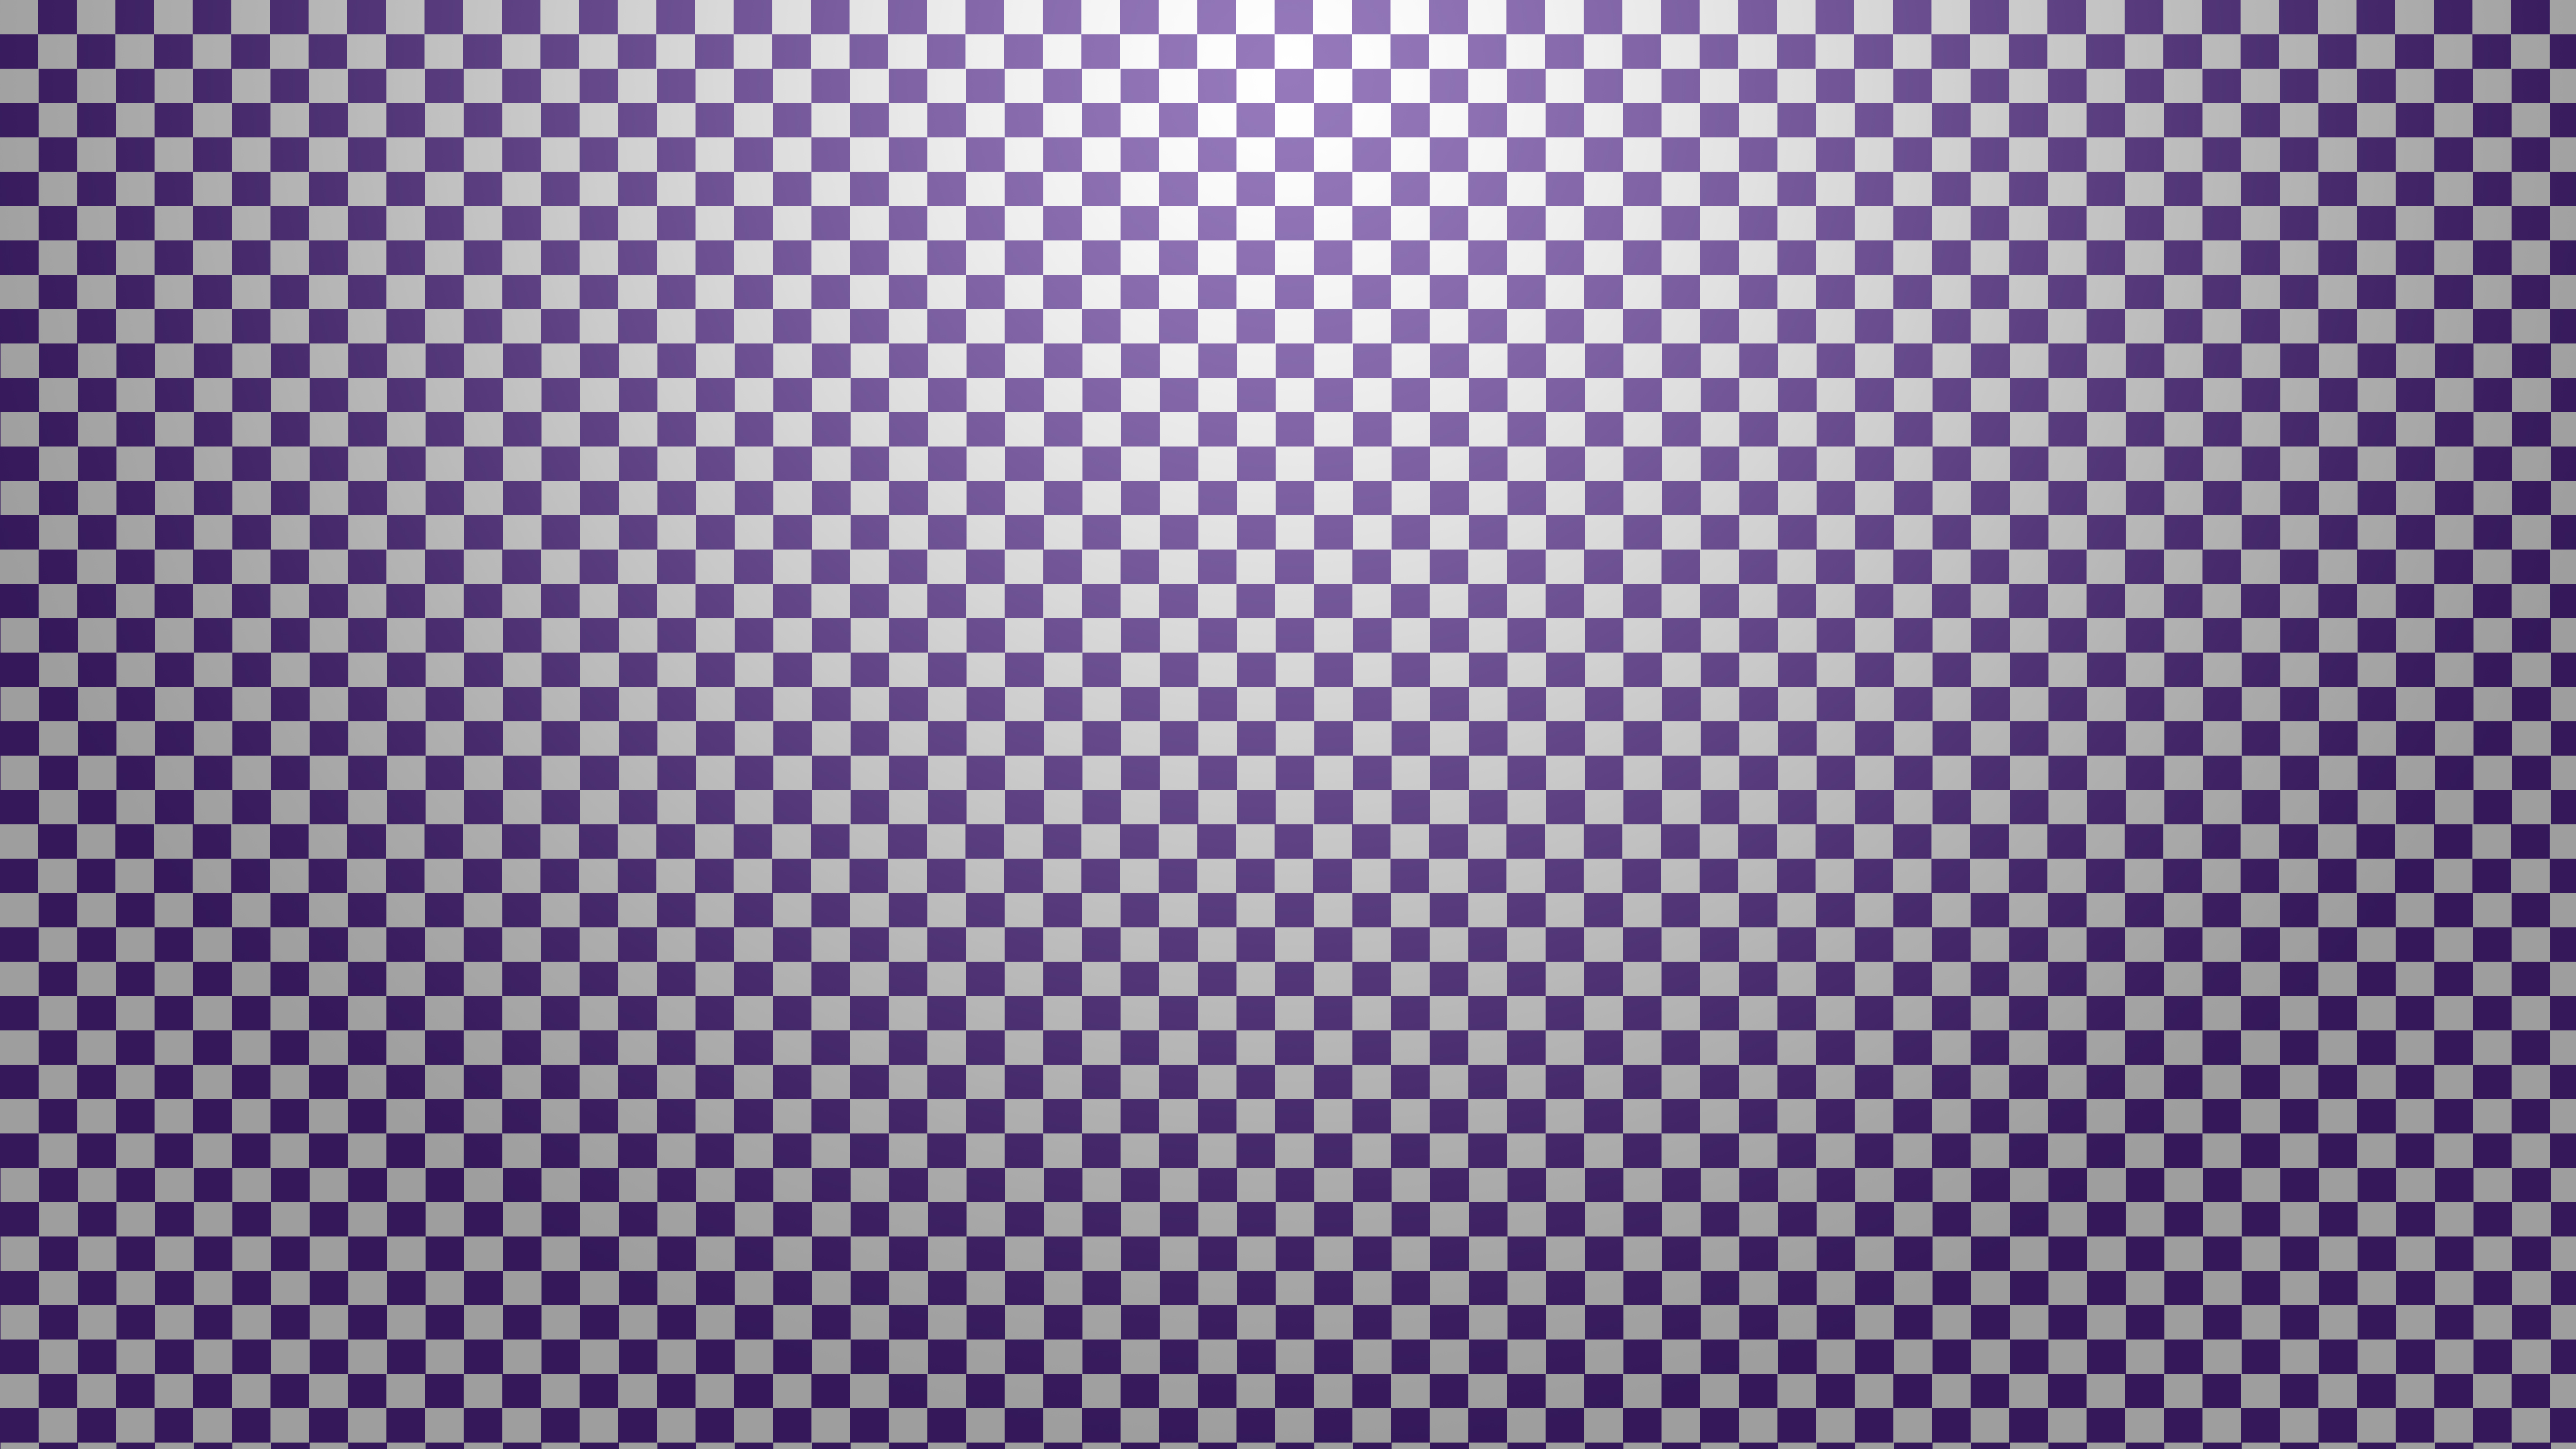 Checkered 4k Ultra Hd Wallpaper Background Image 4800x2700 Id 341703 Wallpaper Abyss